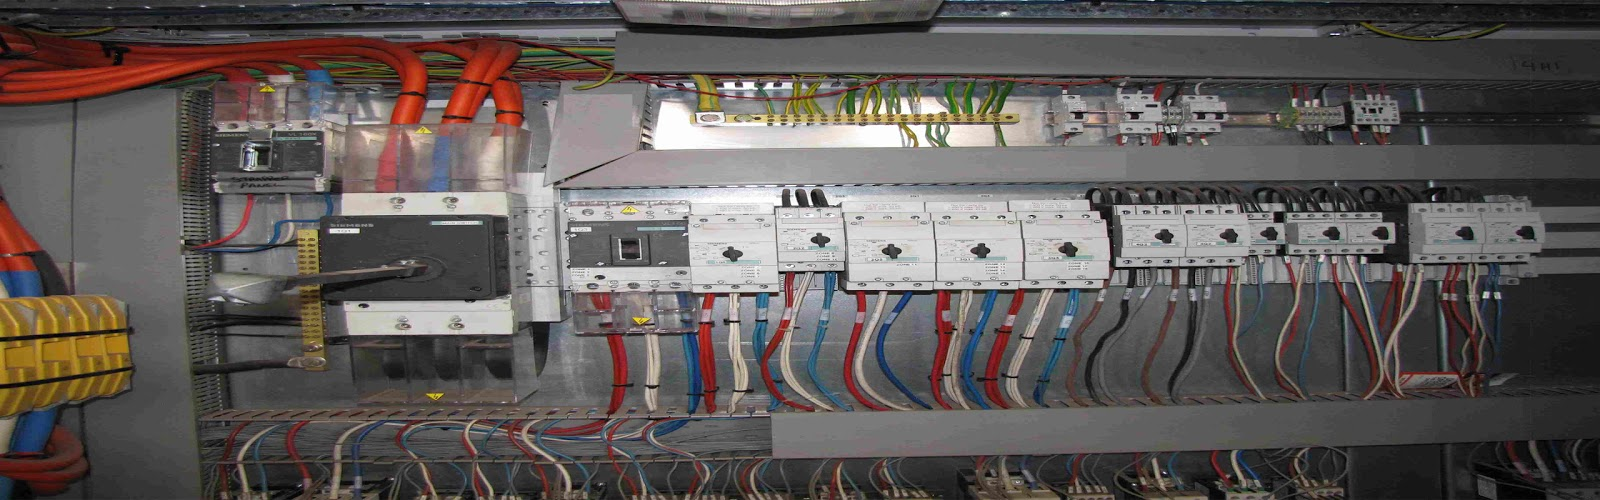 medium resolution of commercial electrical wiring